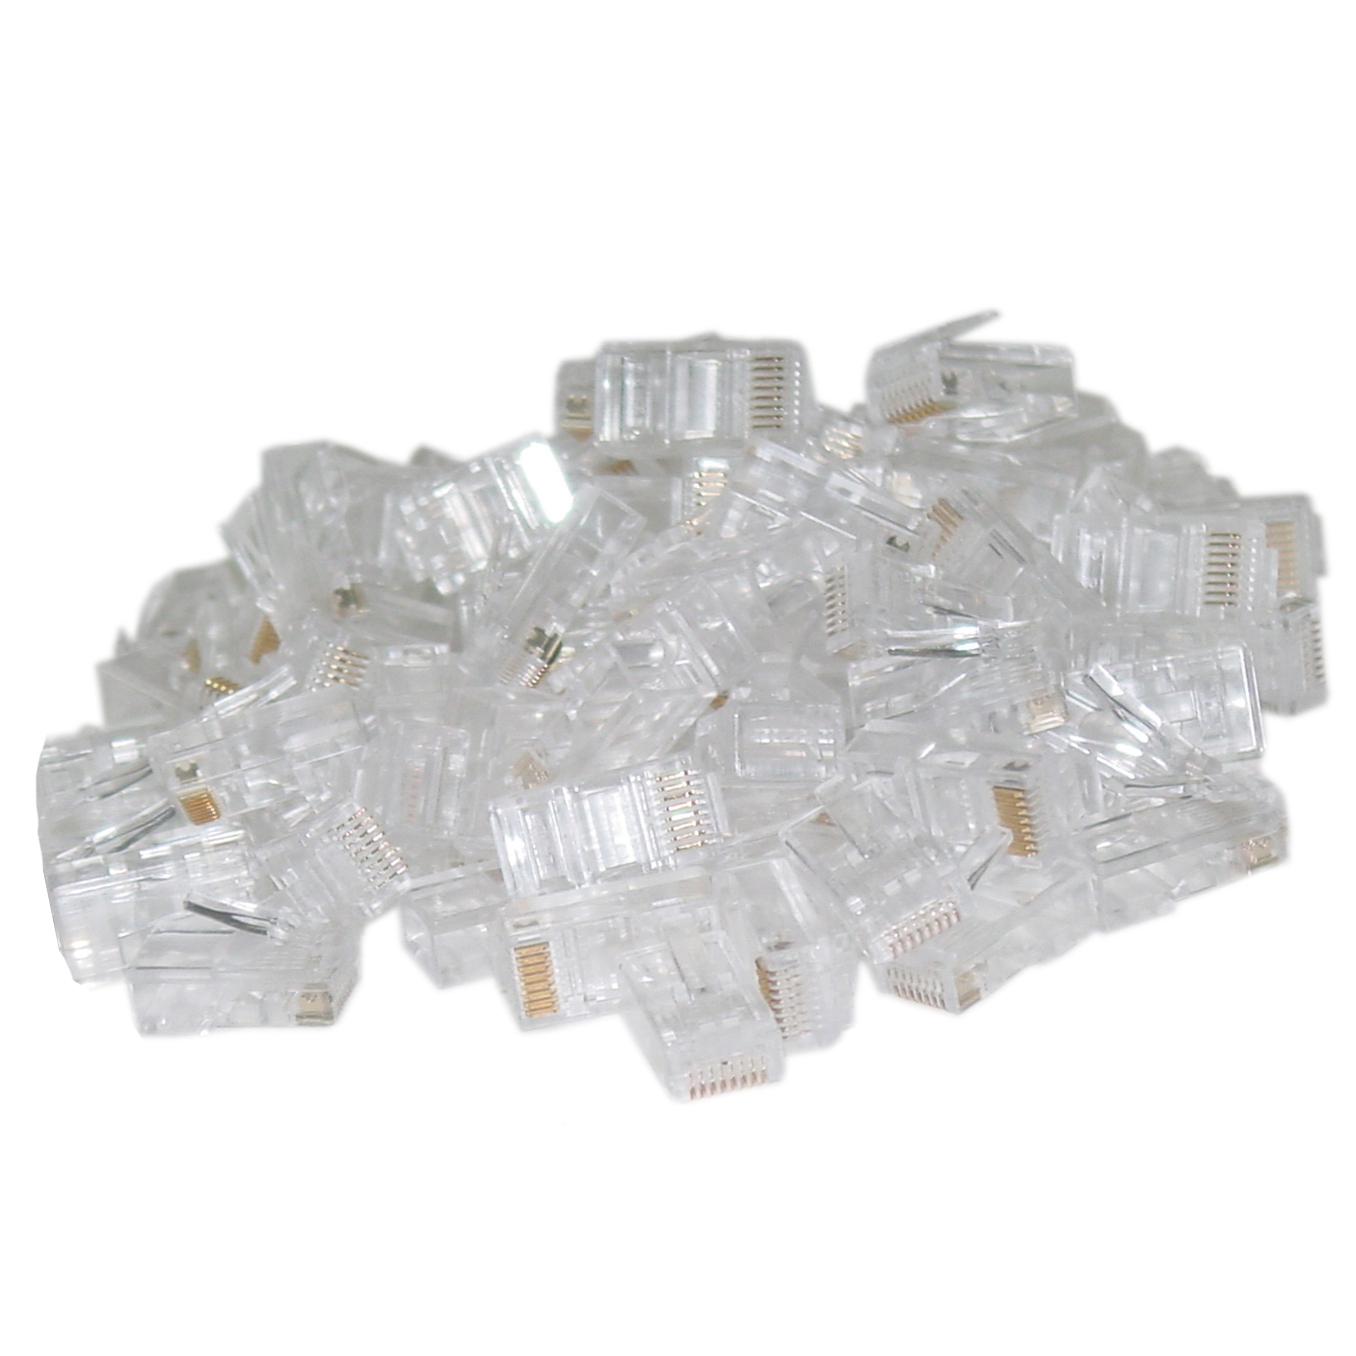 Cat 6 Cable Components Teledata Express Wiring Cat6 Sockets 108700 Rj45 Crimp On Connector Plugs For Solid Bag Of 50